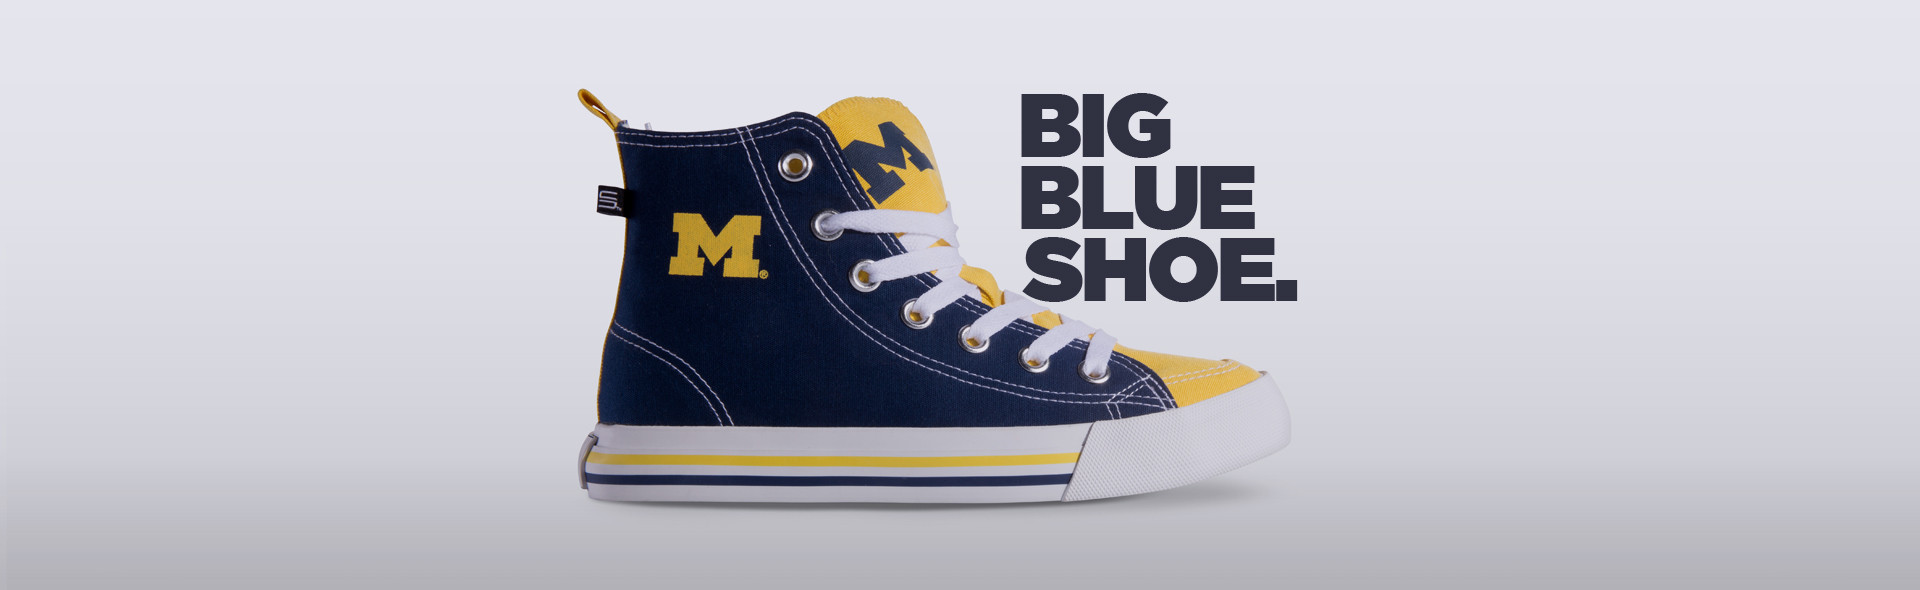 michigan-high-top1